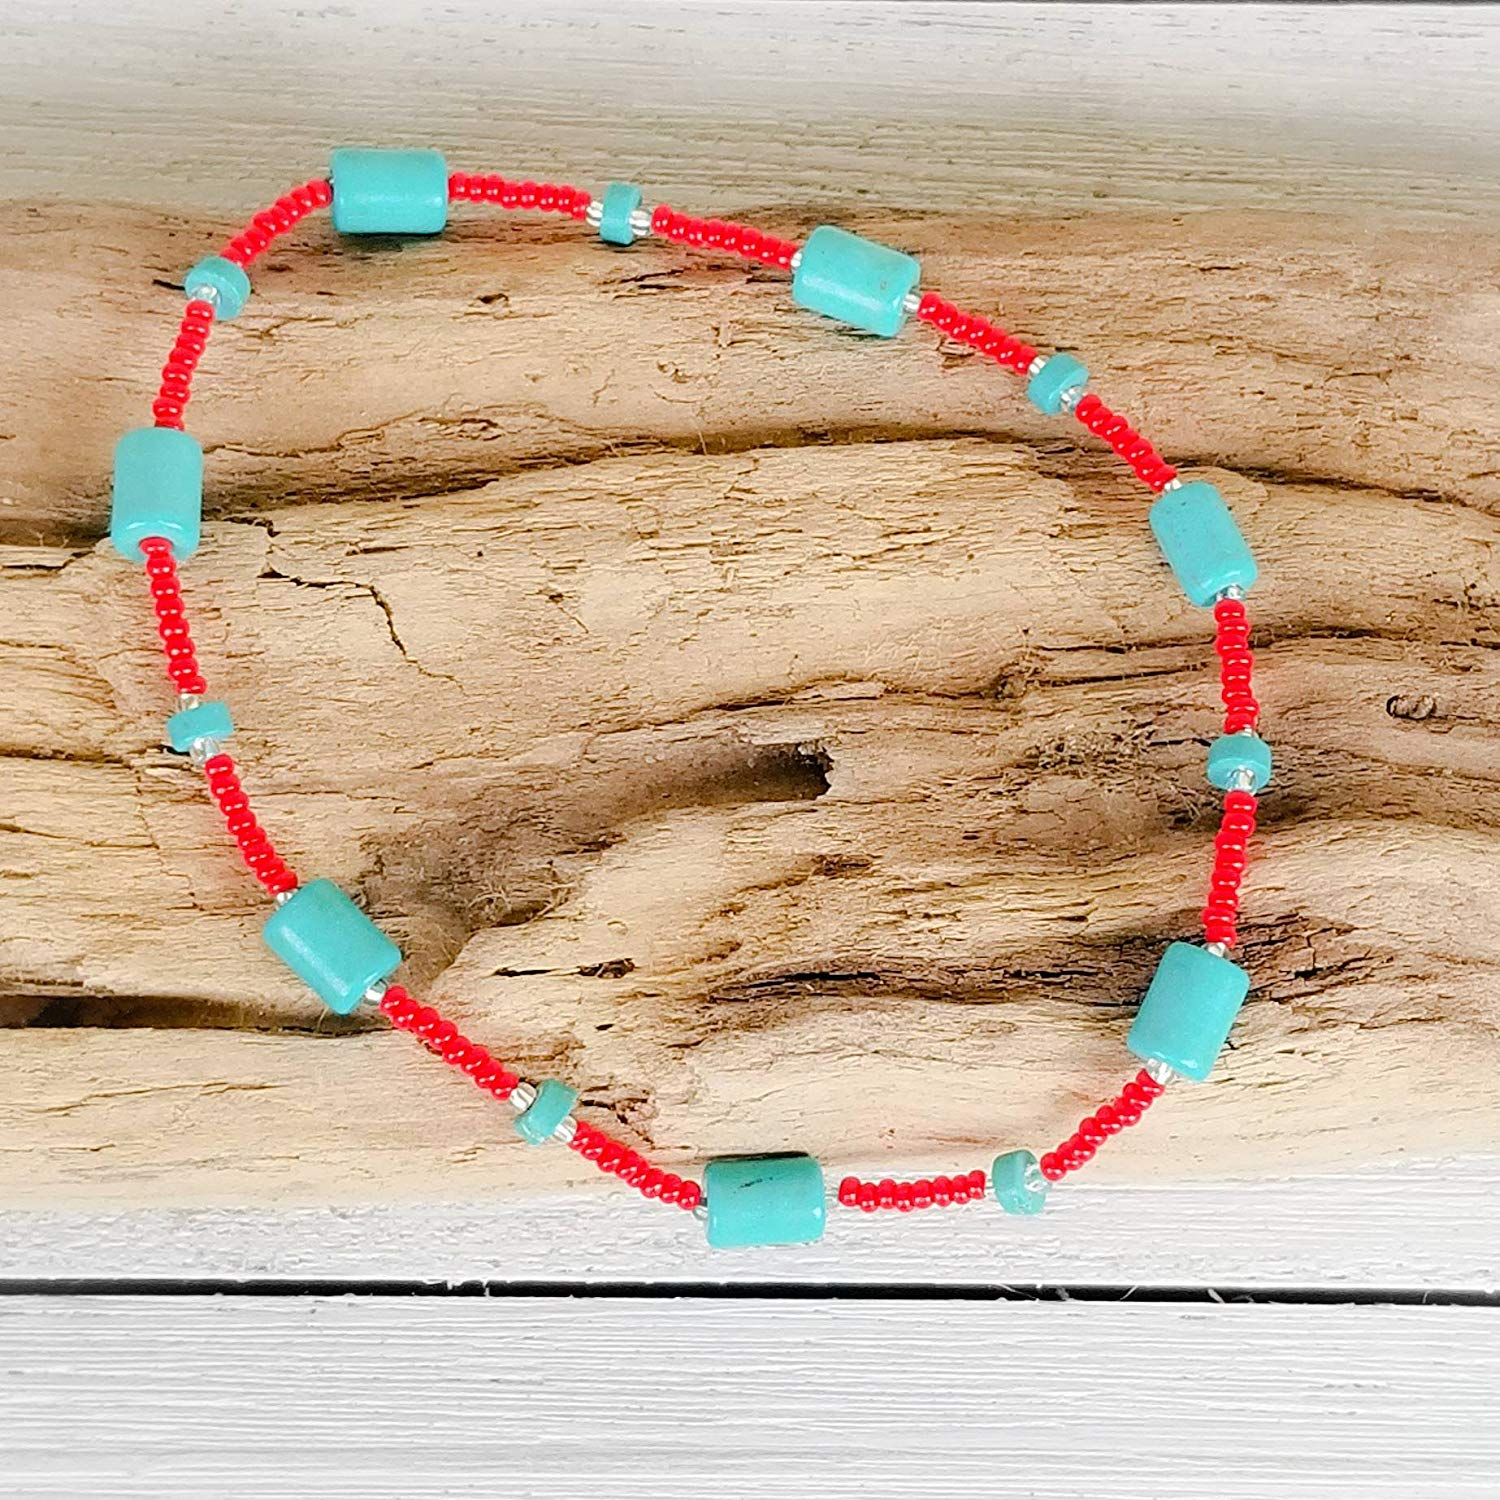 Turquoise Anklet, Beaded Anklet, Native American Jewelry, Turquoise Ankle Bracelet, Turquoise Beaded Anklet, Beach Ankle Bracelet, Bohemian